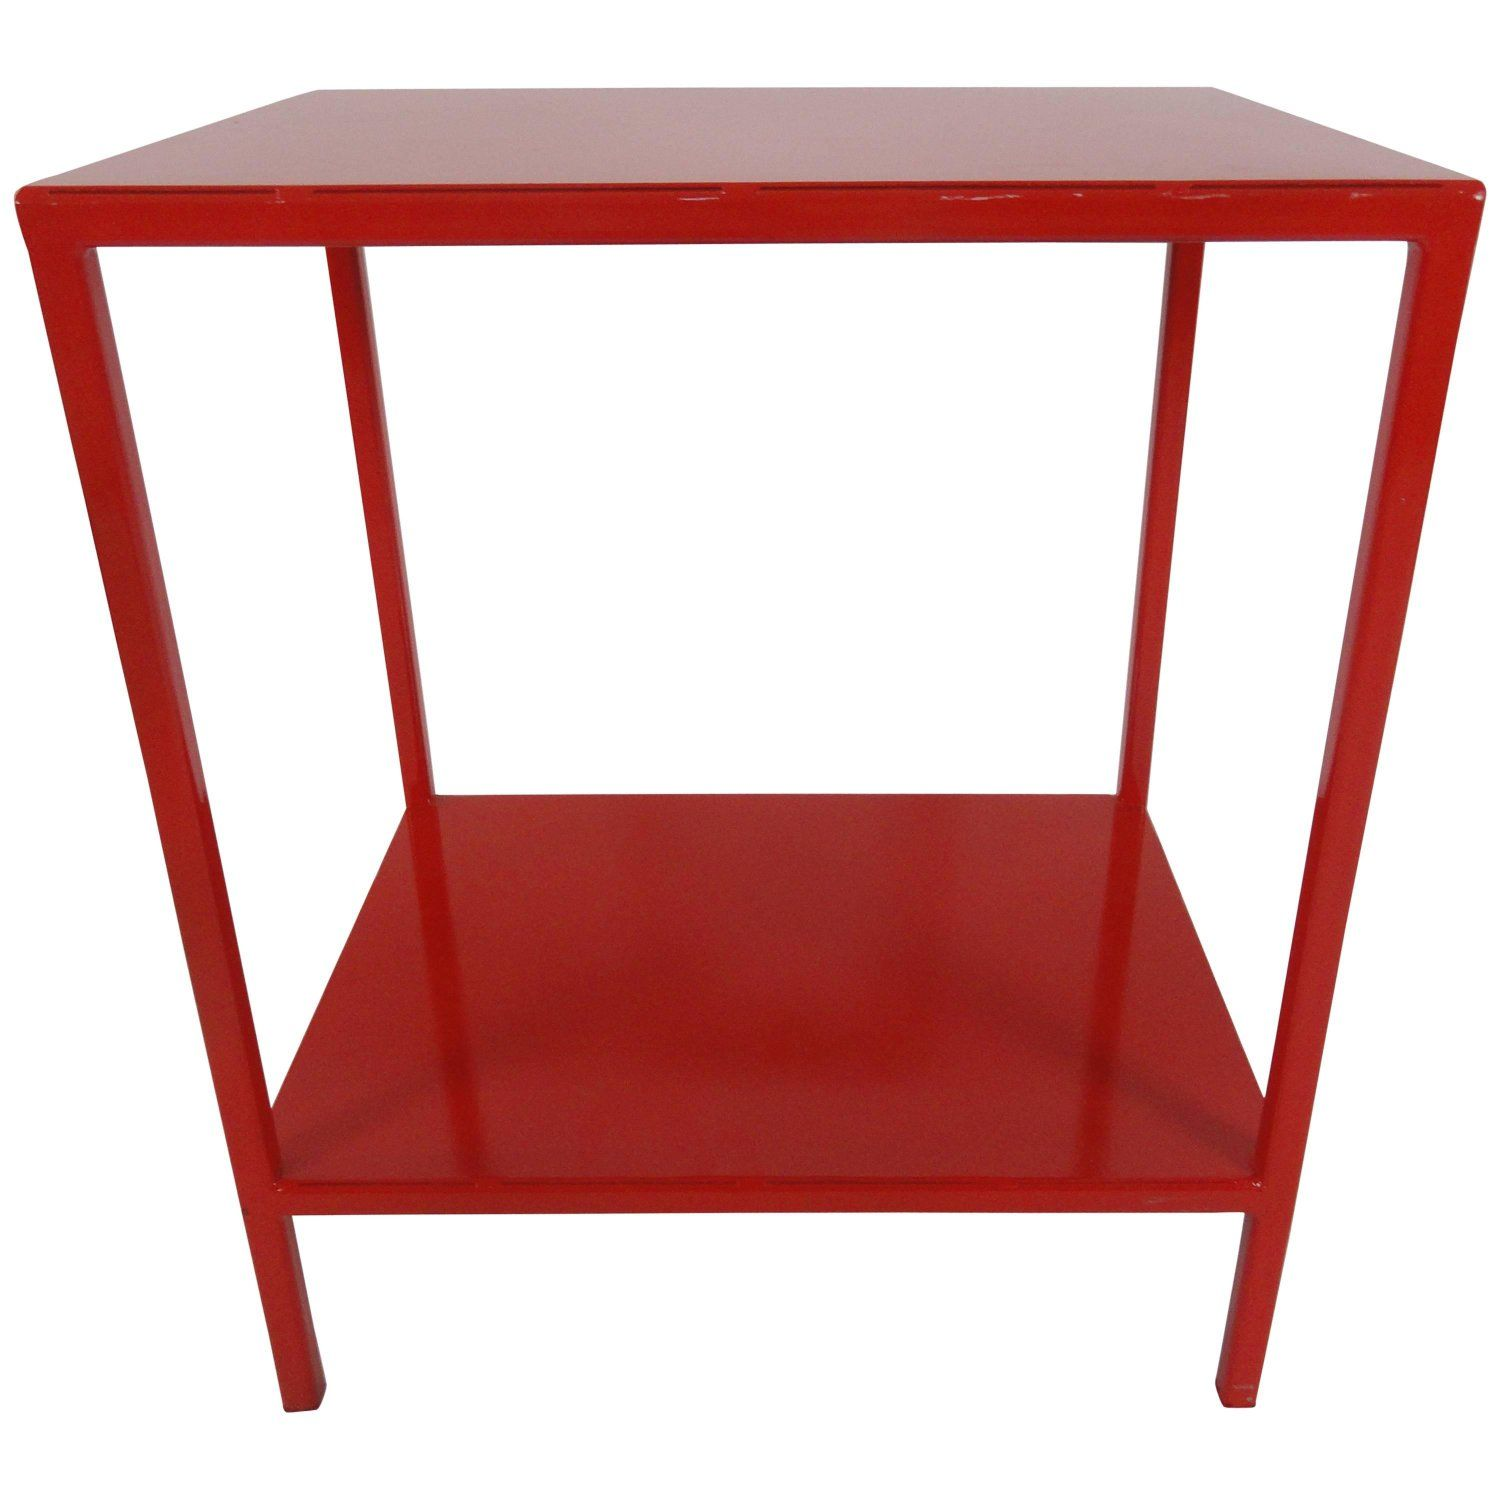 baldwin side table tables small red accent accentshome lamp shades only white hairpin legs wood for outdoor furniture ryobi black threshold windham buffet interior door kids desk